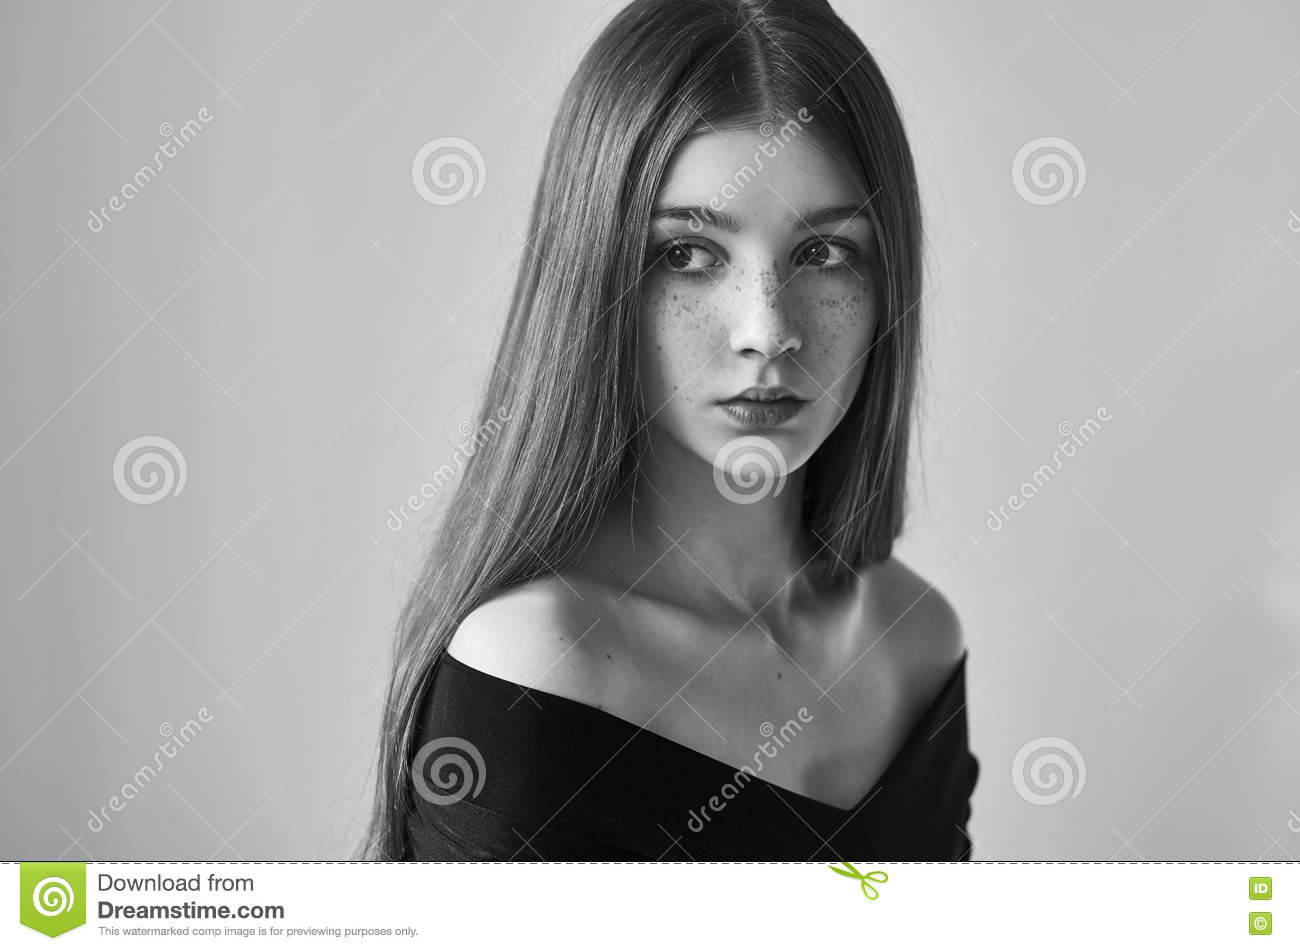 Dramatic black and white portrait of a beautiful lonely girl with freckles on a white background